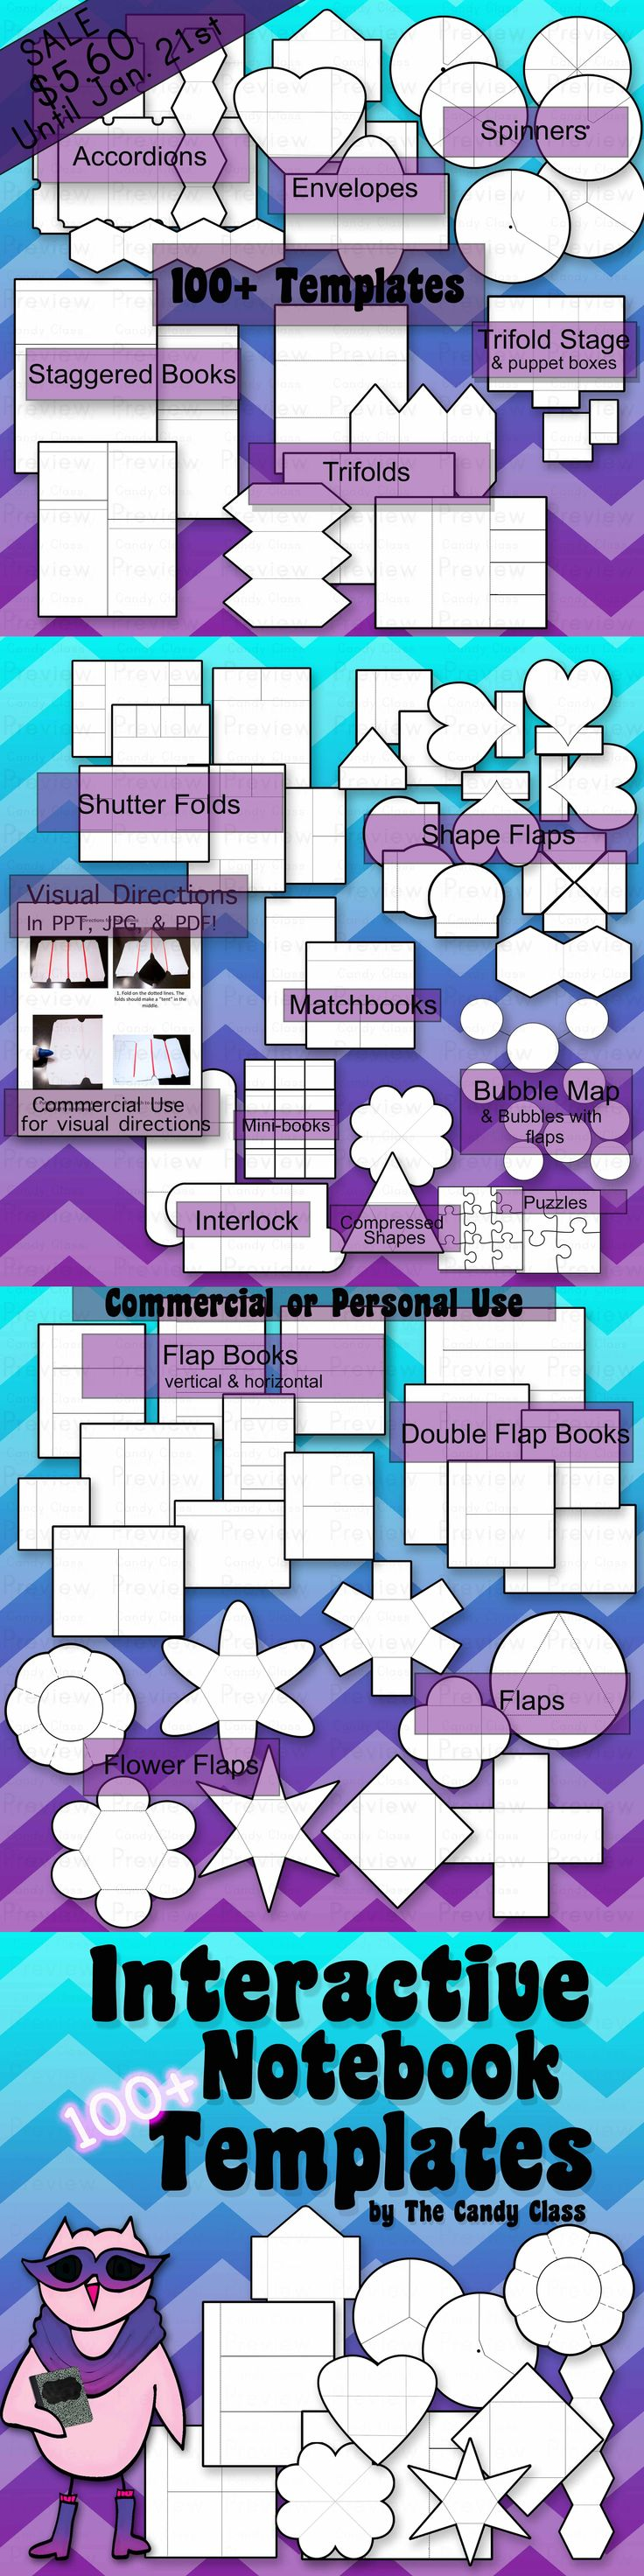 Interactive Reading Notebook with 100+ templates for commercial and personal use. On sale for $5.60 until Jan. 21st!!!